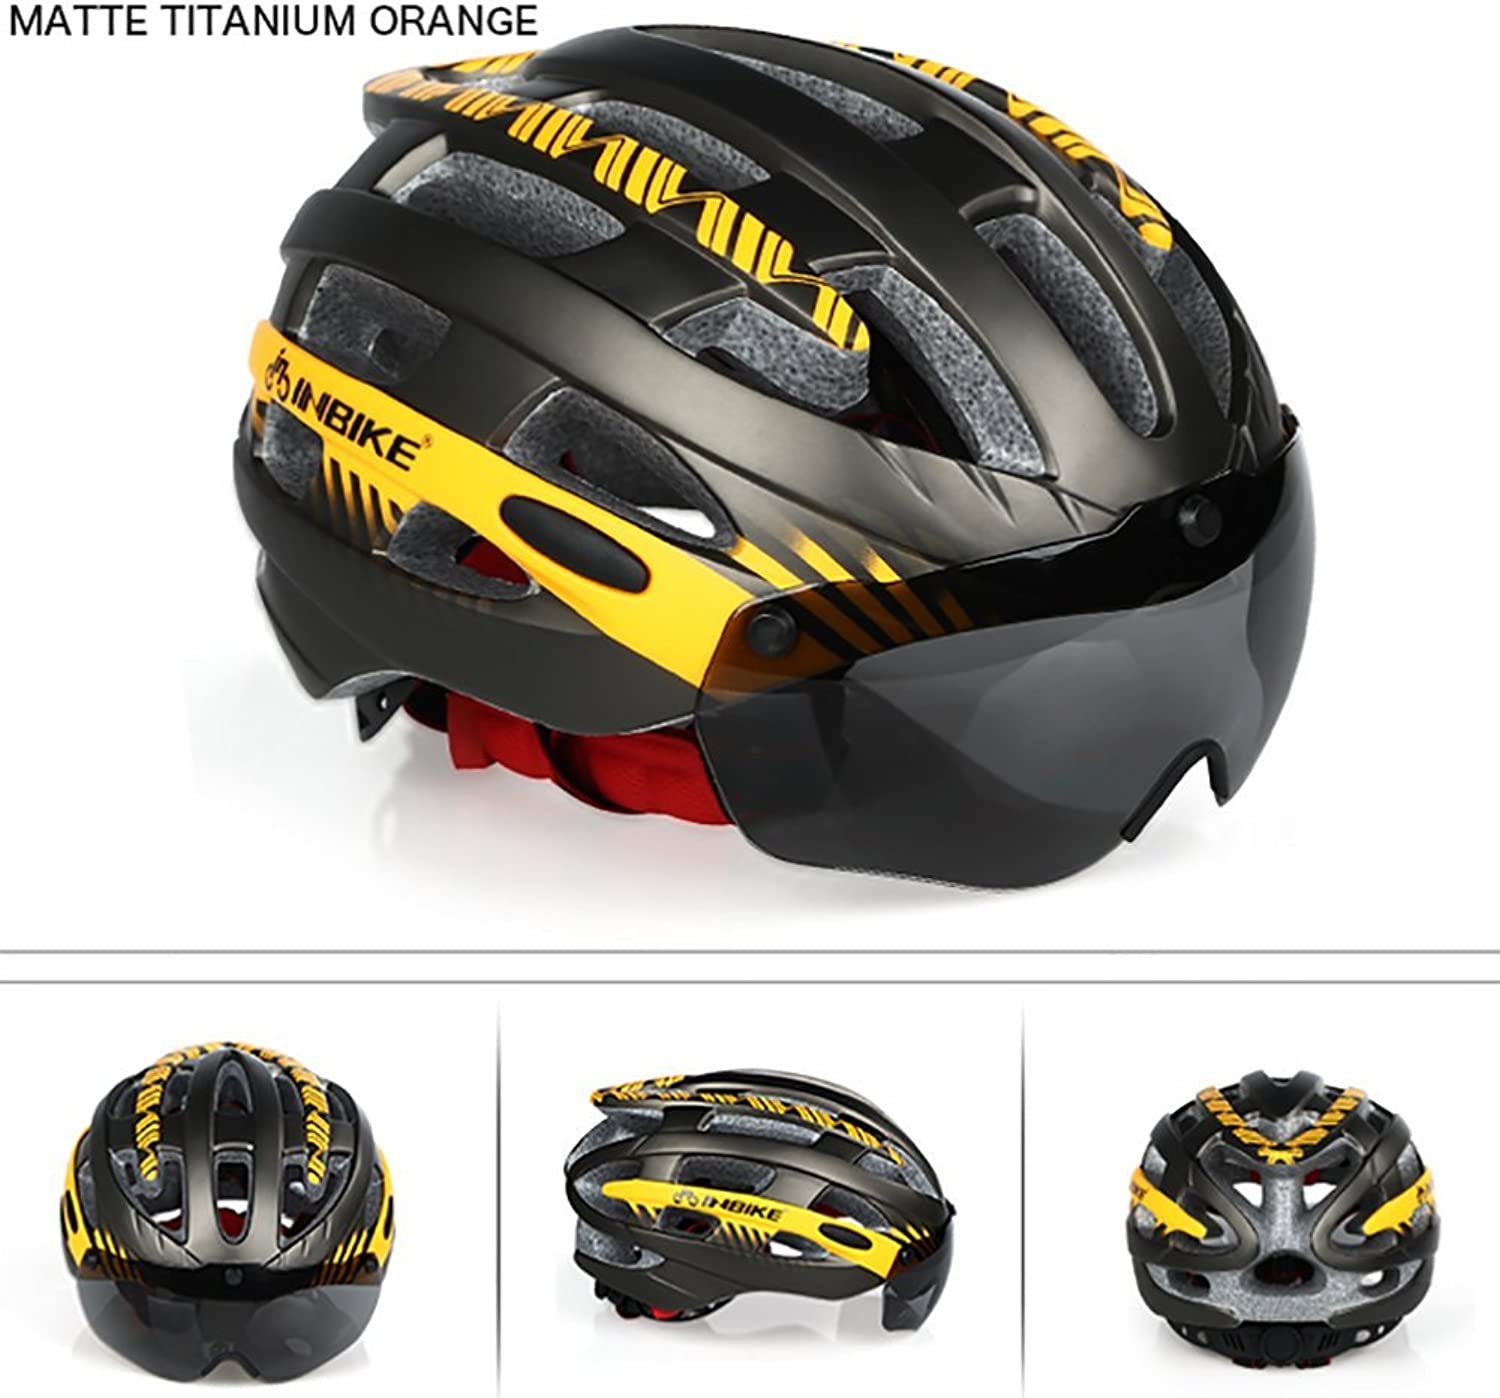 Bicycle Helmet Adsorption Goggles Strengthen Strong EPS Materials Safety Helmet Safer (Unisex, 4 colors),Yellow(M)